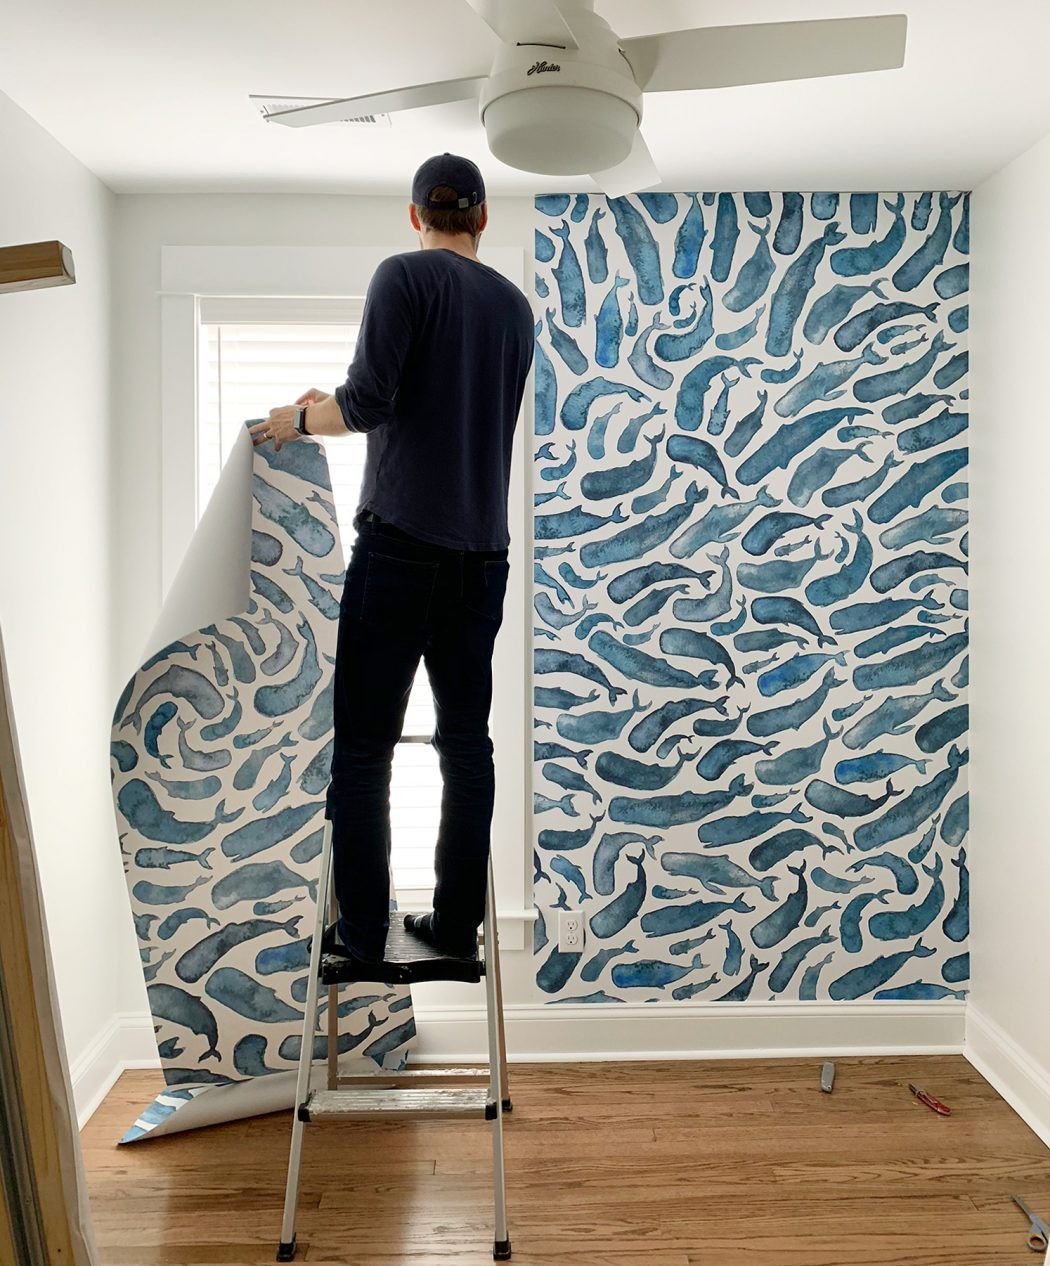 How To Install A Removable Wallpaper Mural | Home & DIY Favorites